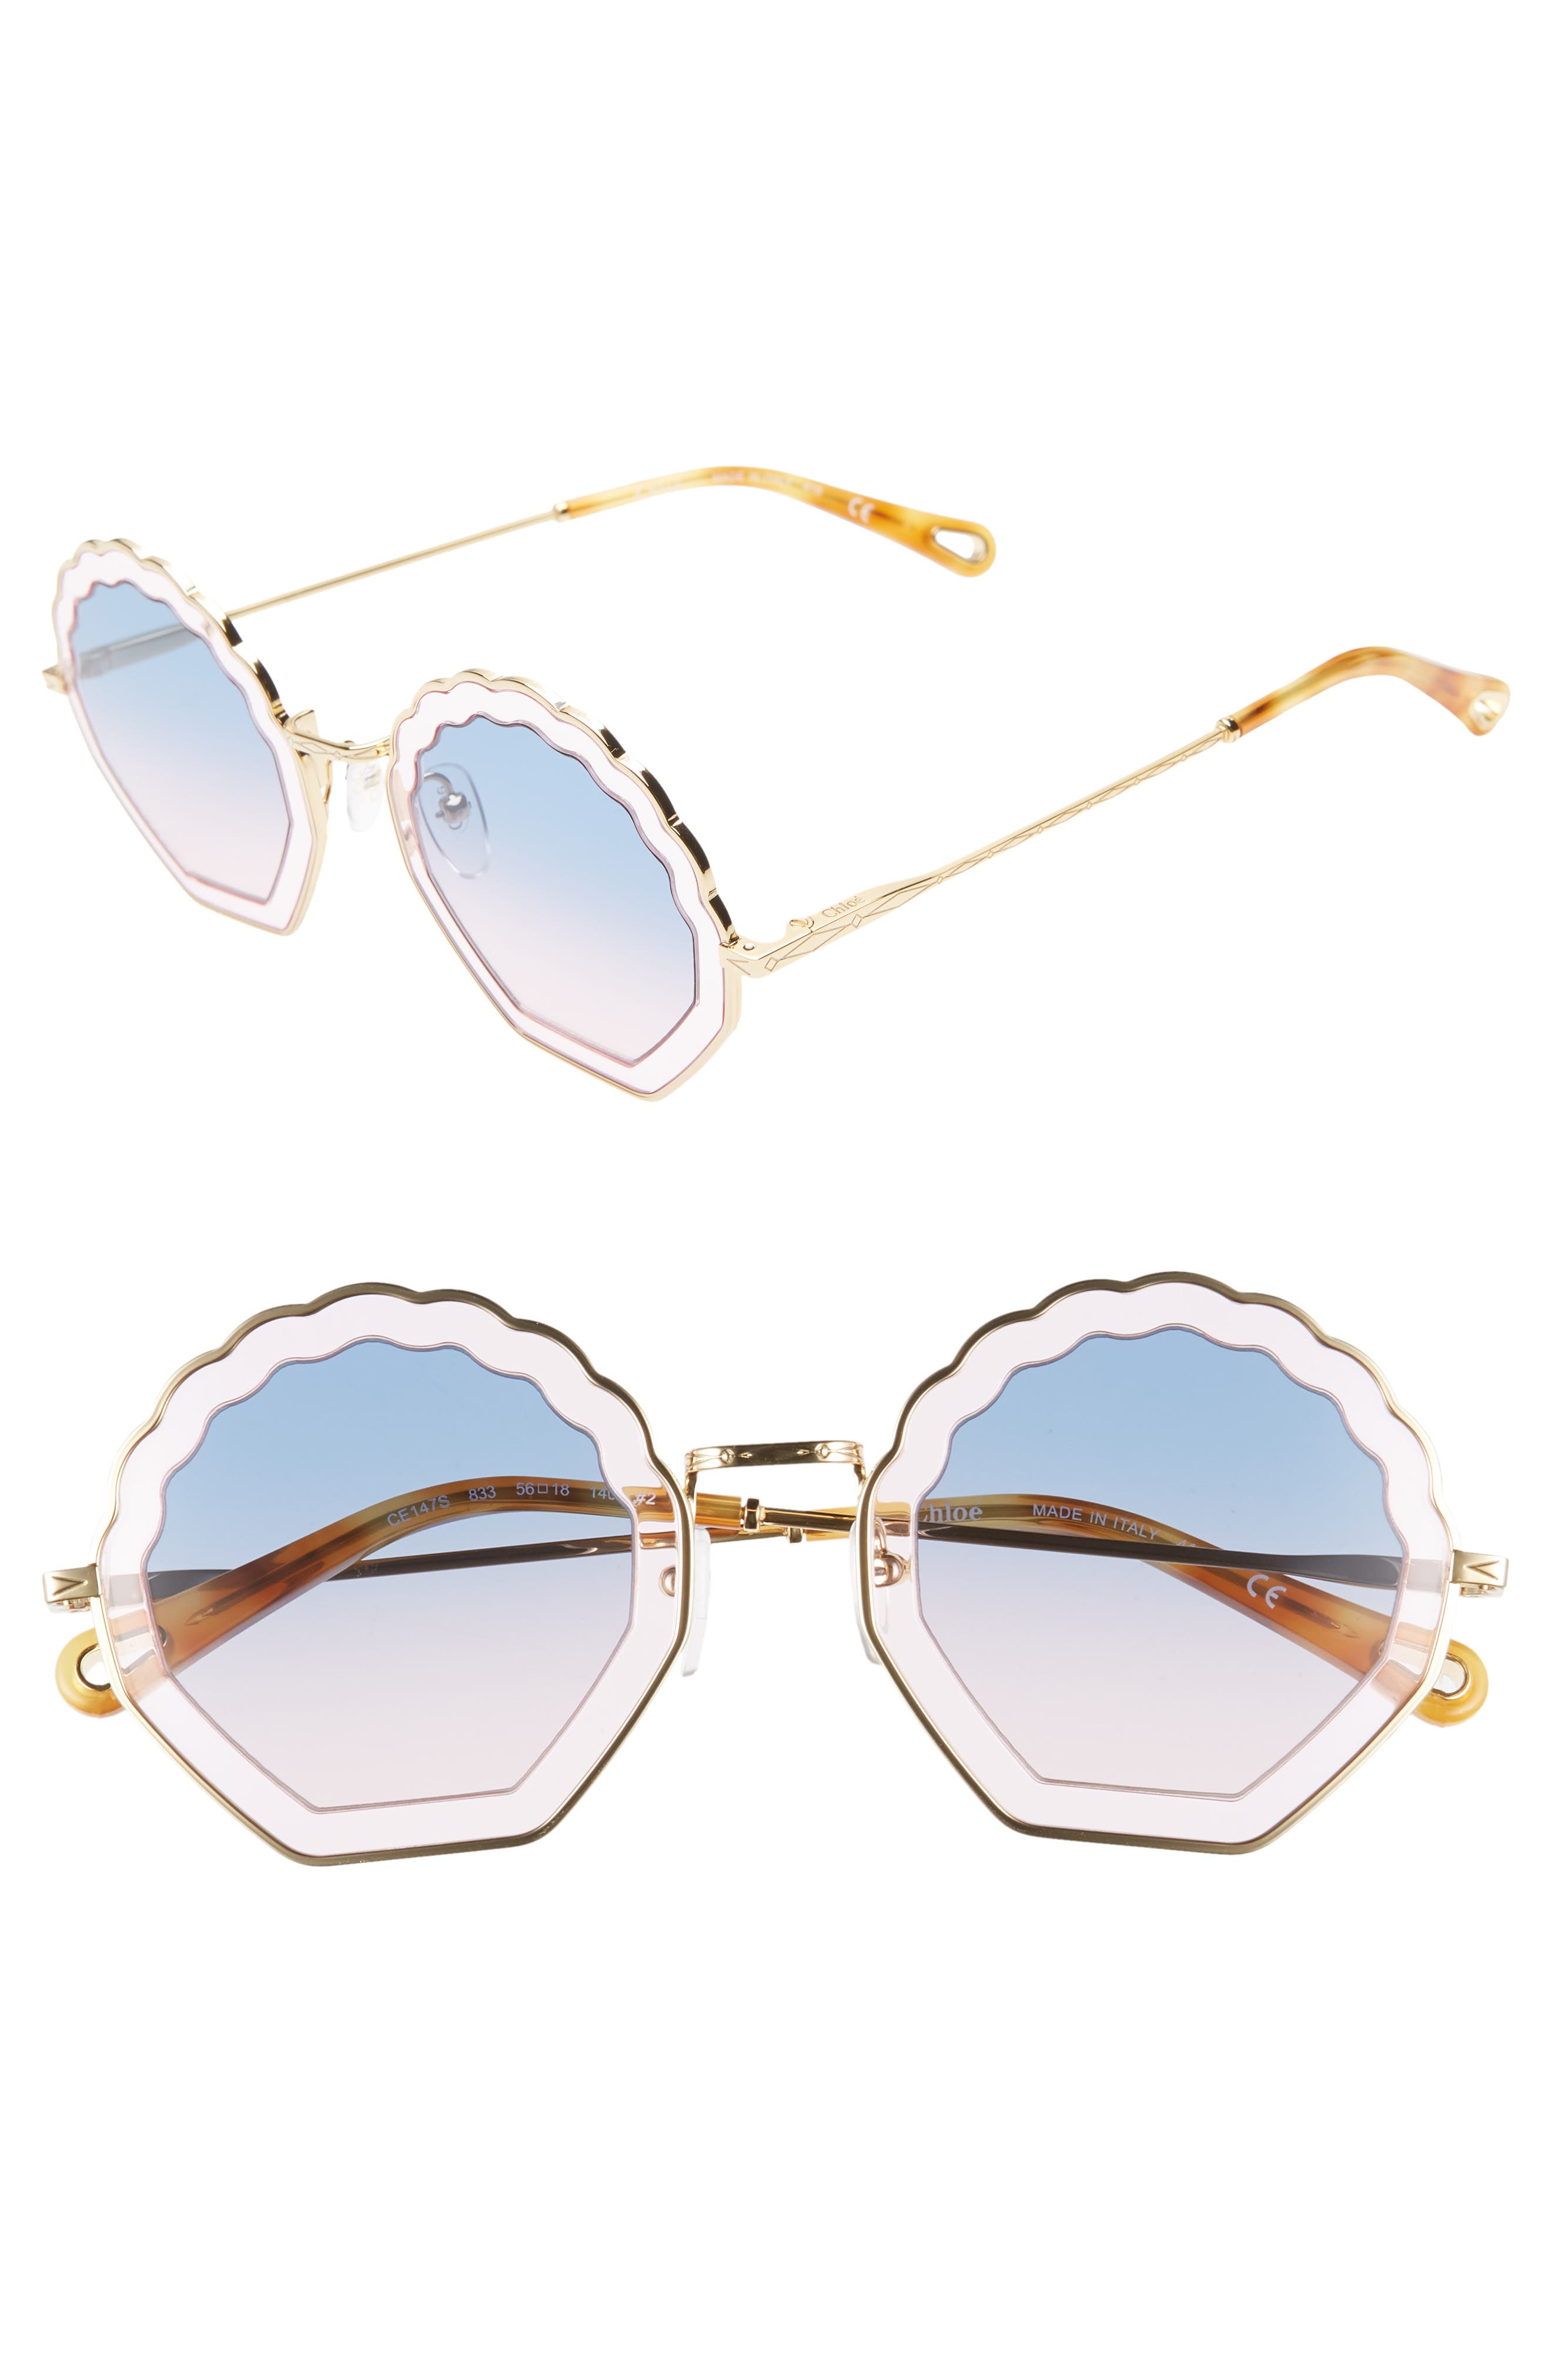 Chloe Tally 5m Scalloped Sunglasses - Gold/lt Pink/gradient Blue